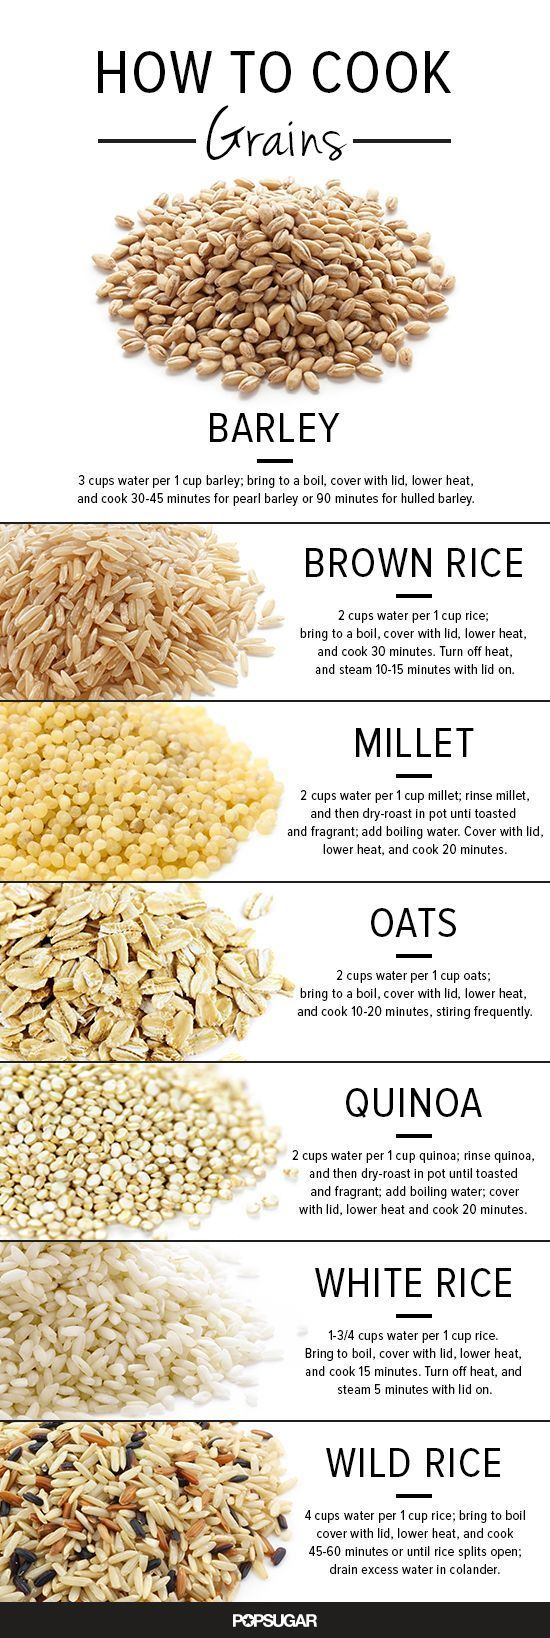 How to cook grains! Print this and keep it in the kitchen to remind yourself to try a new grain every time you go shopping.